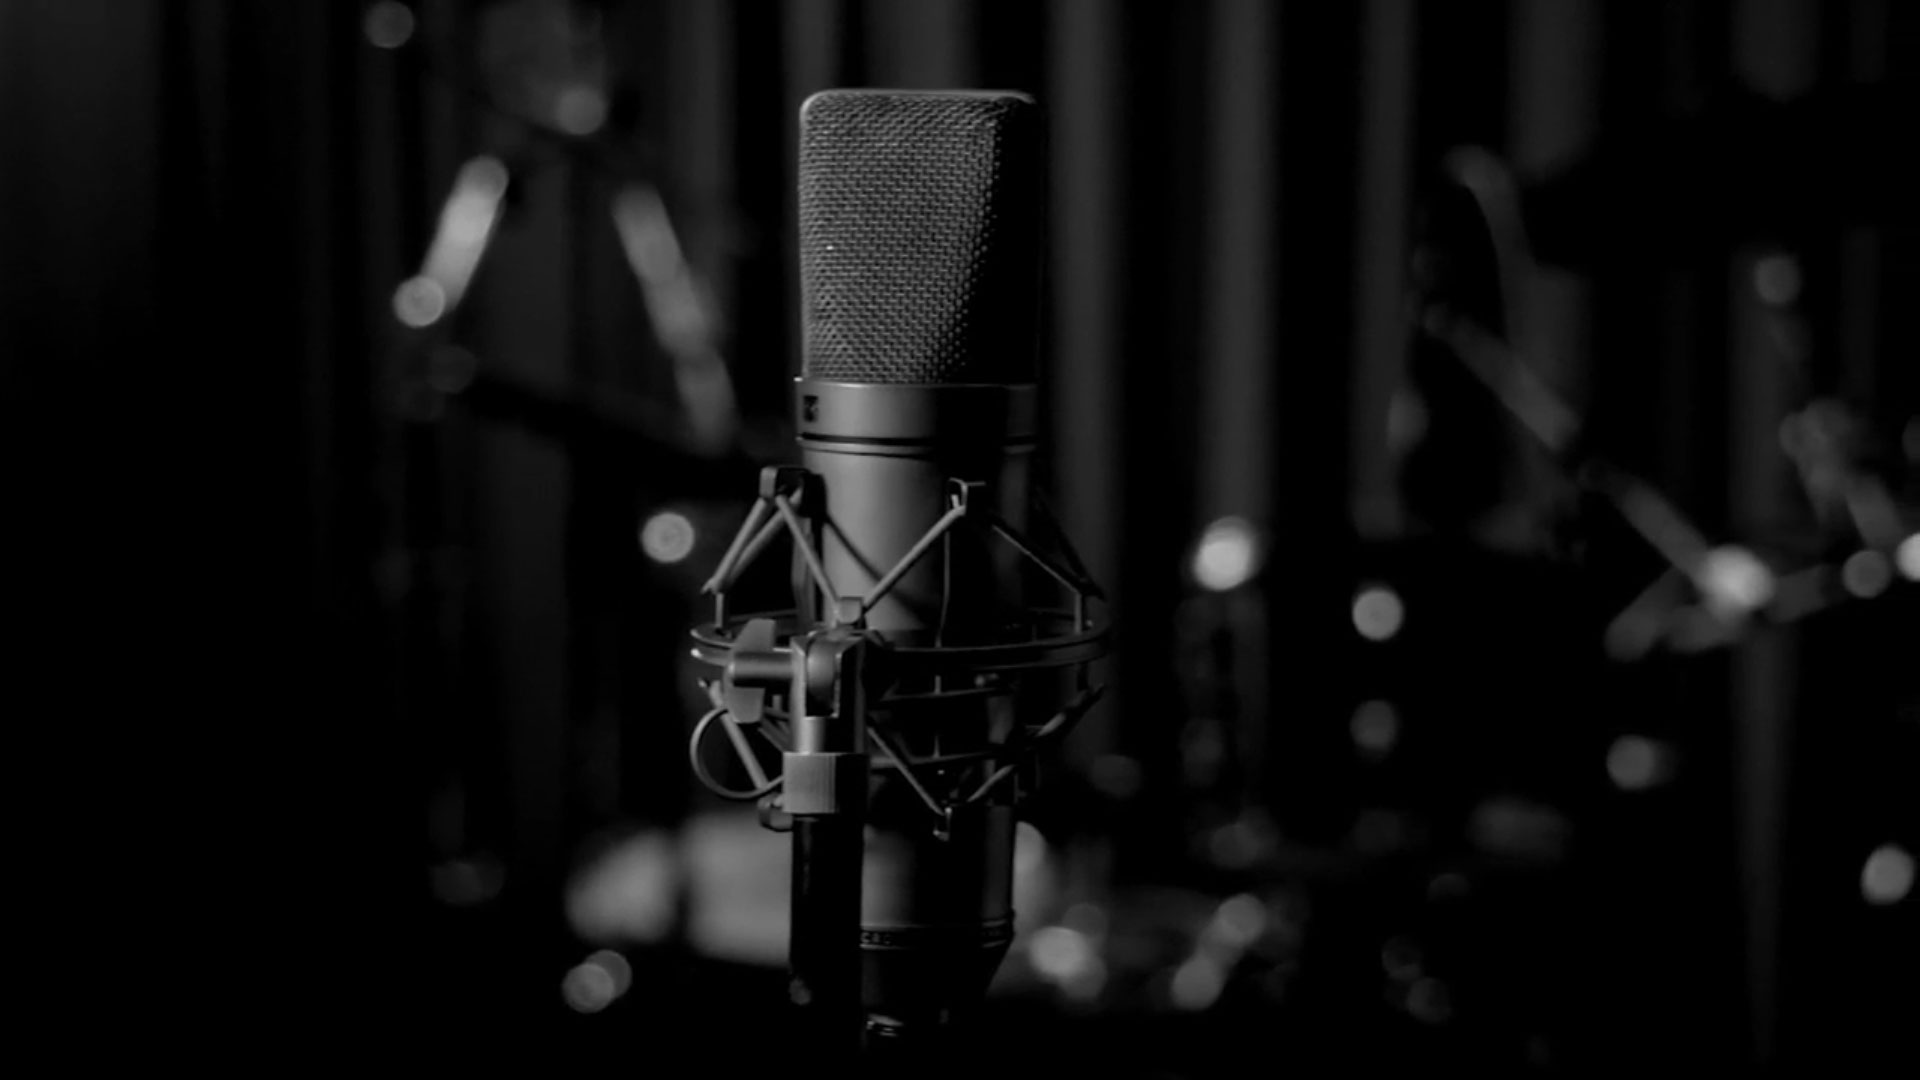 Black and white image of a recording microphone.